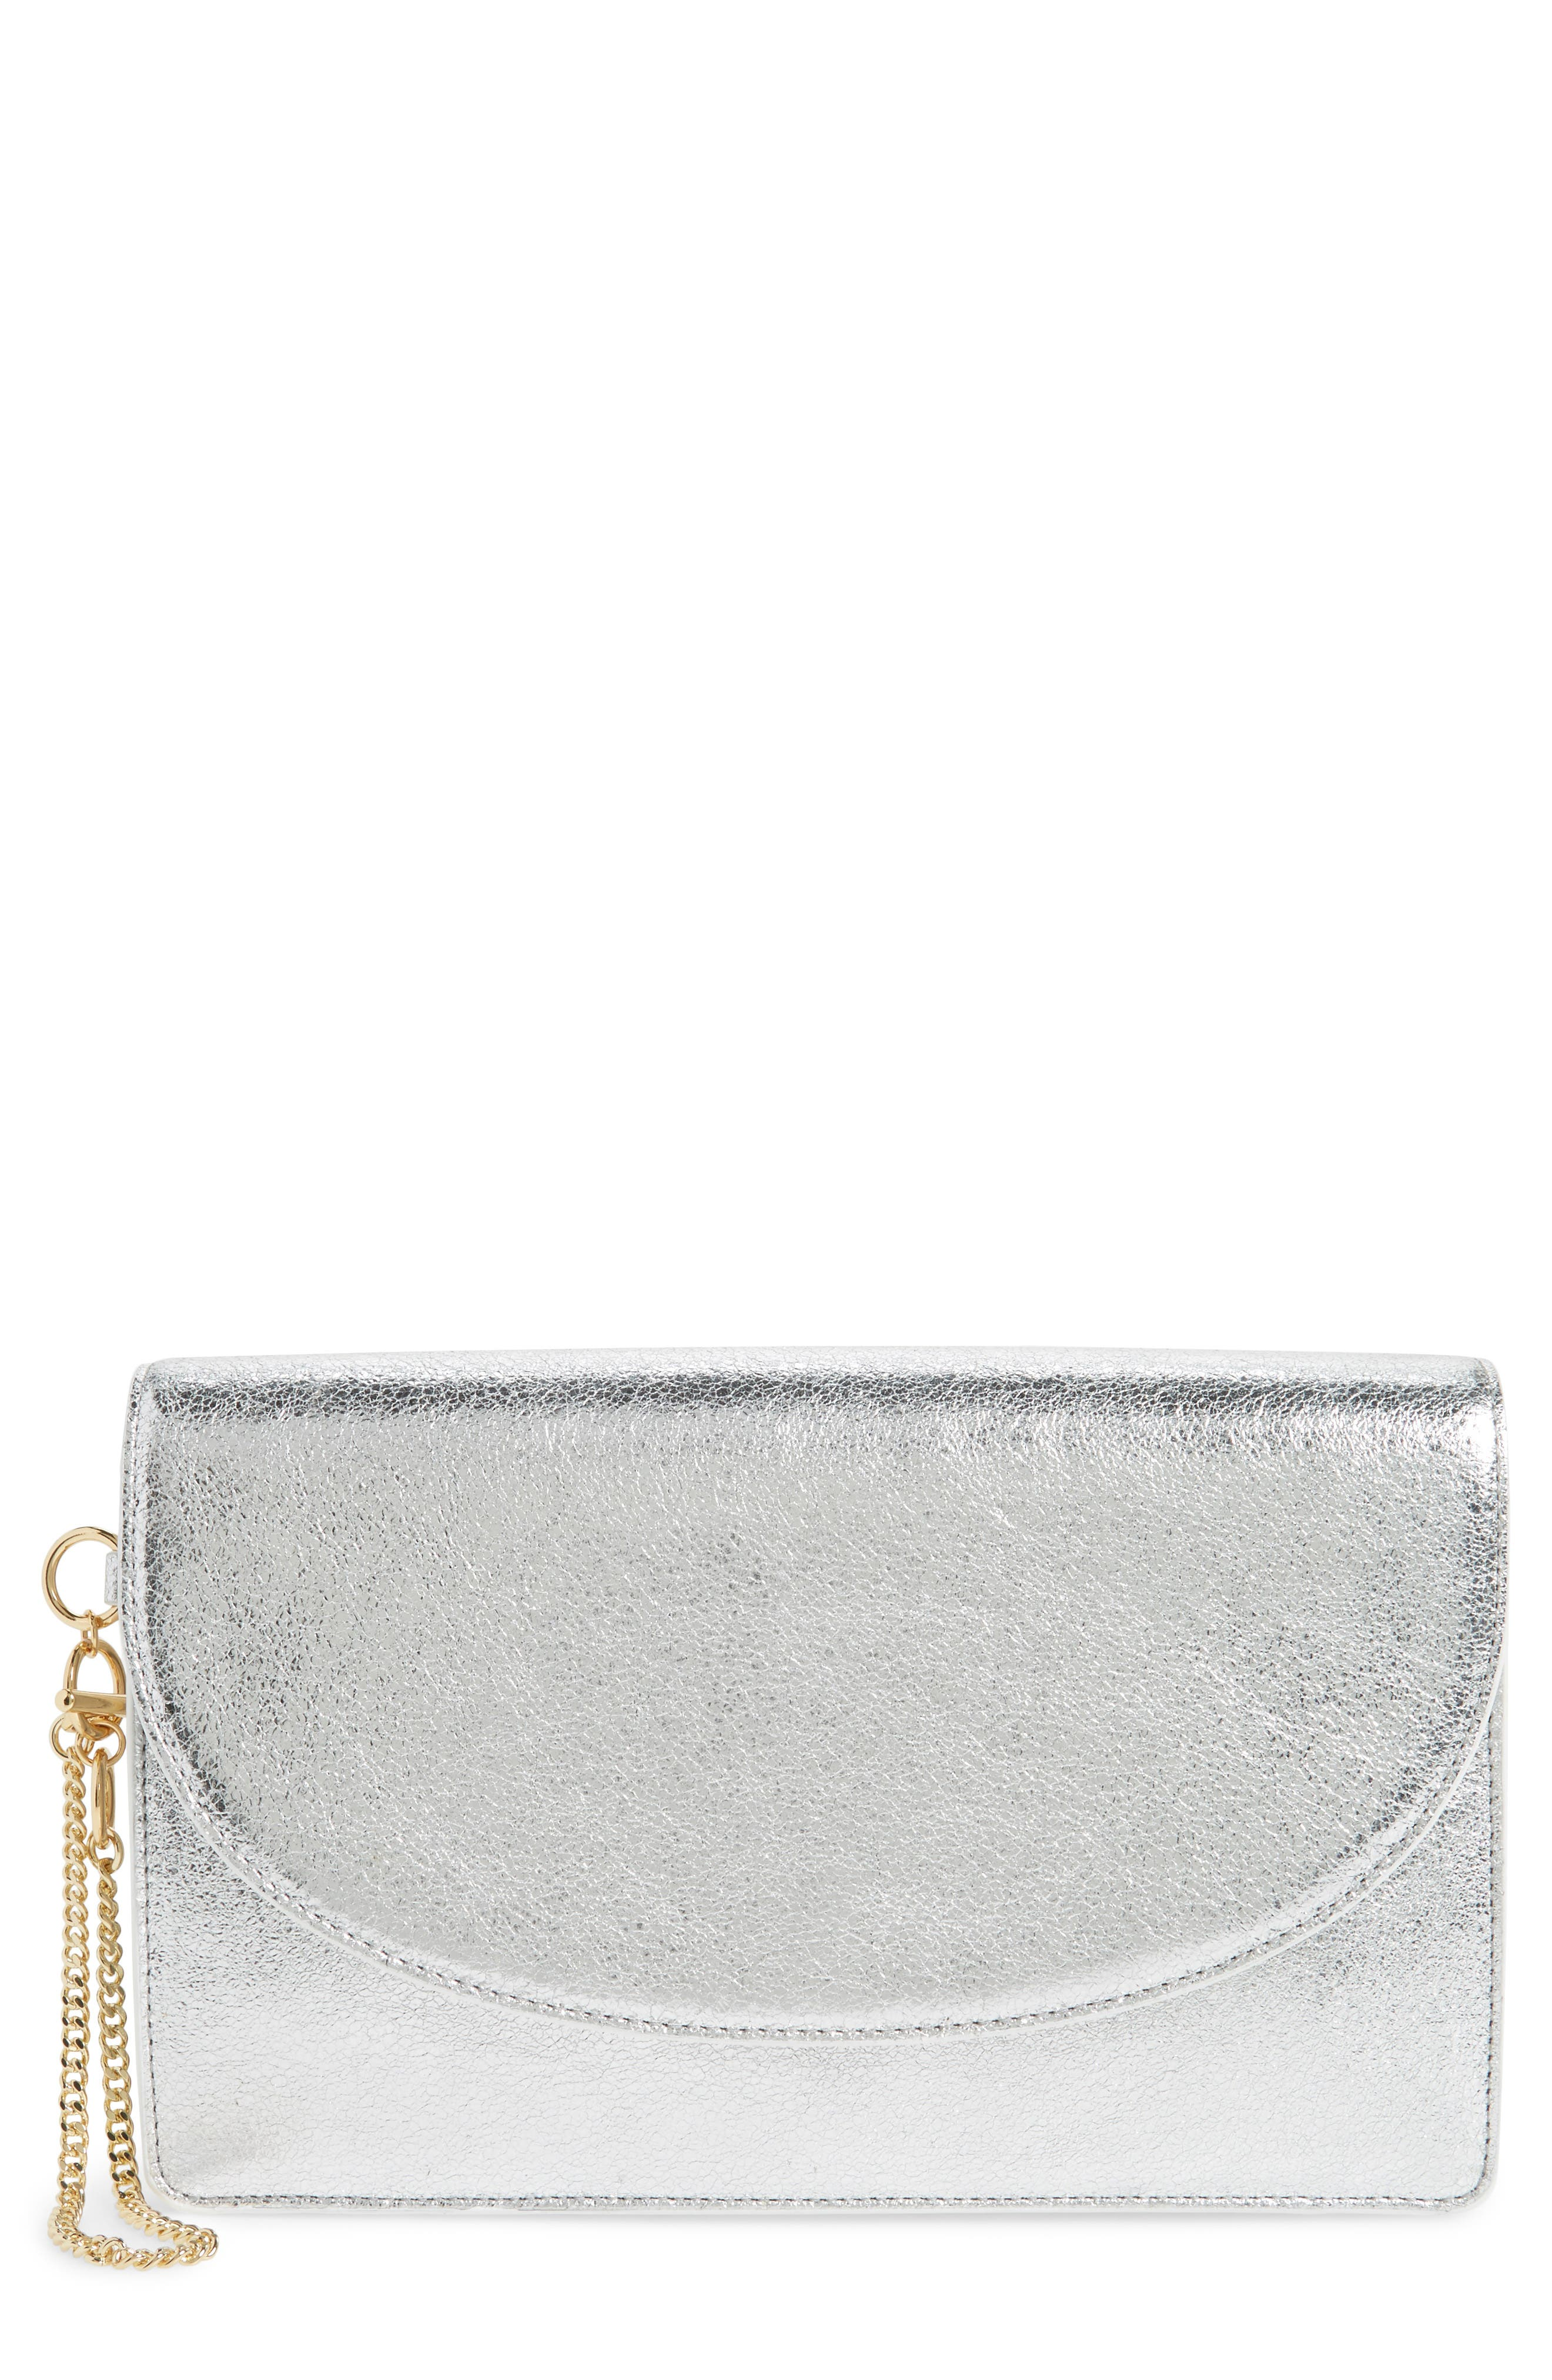 Saddle Leather Clutch,                             Main thumbnail 1, color,                             Silver